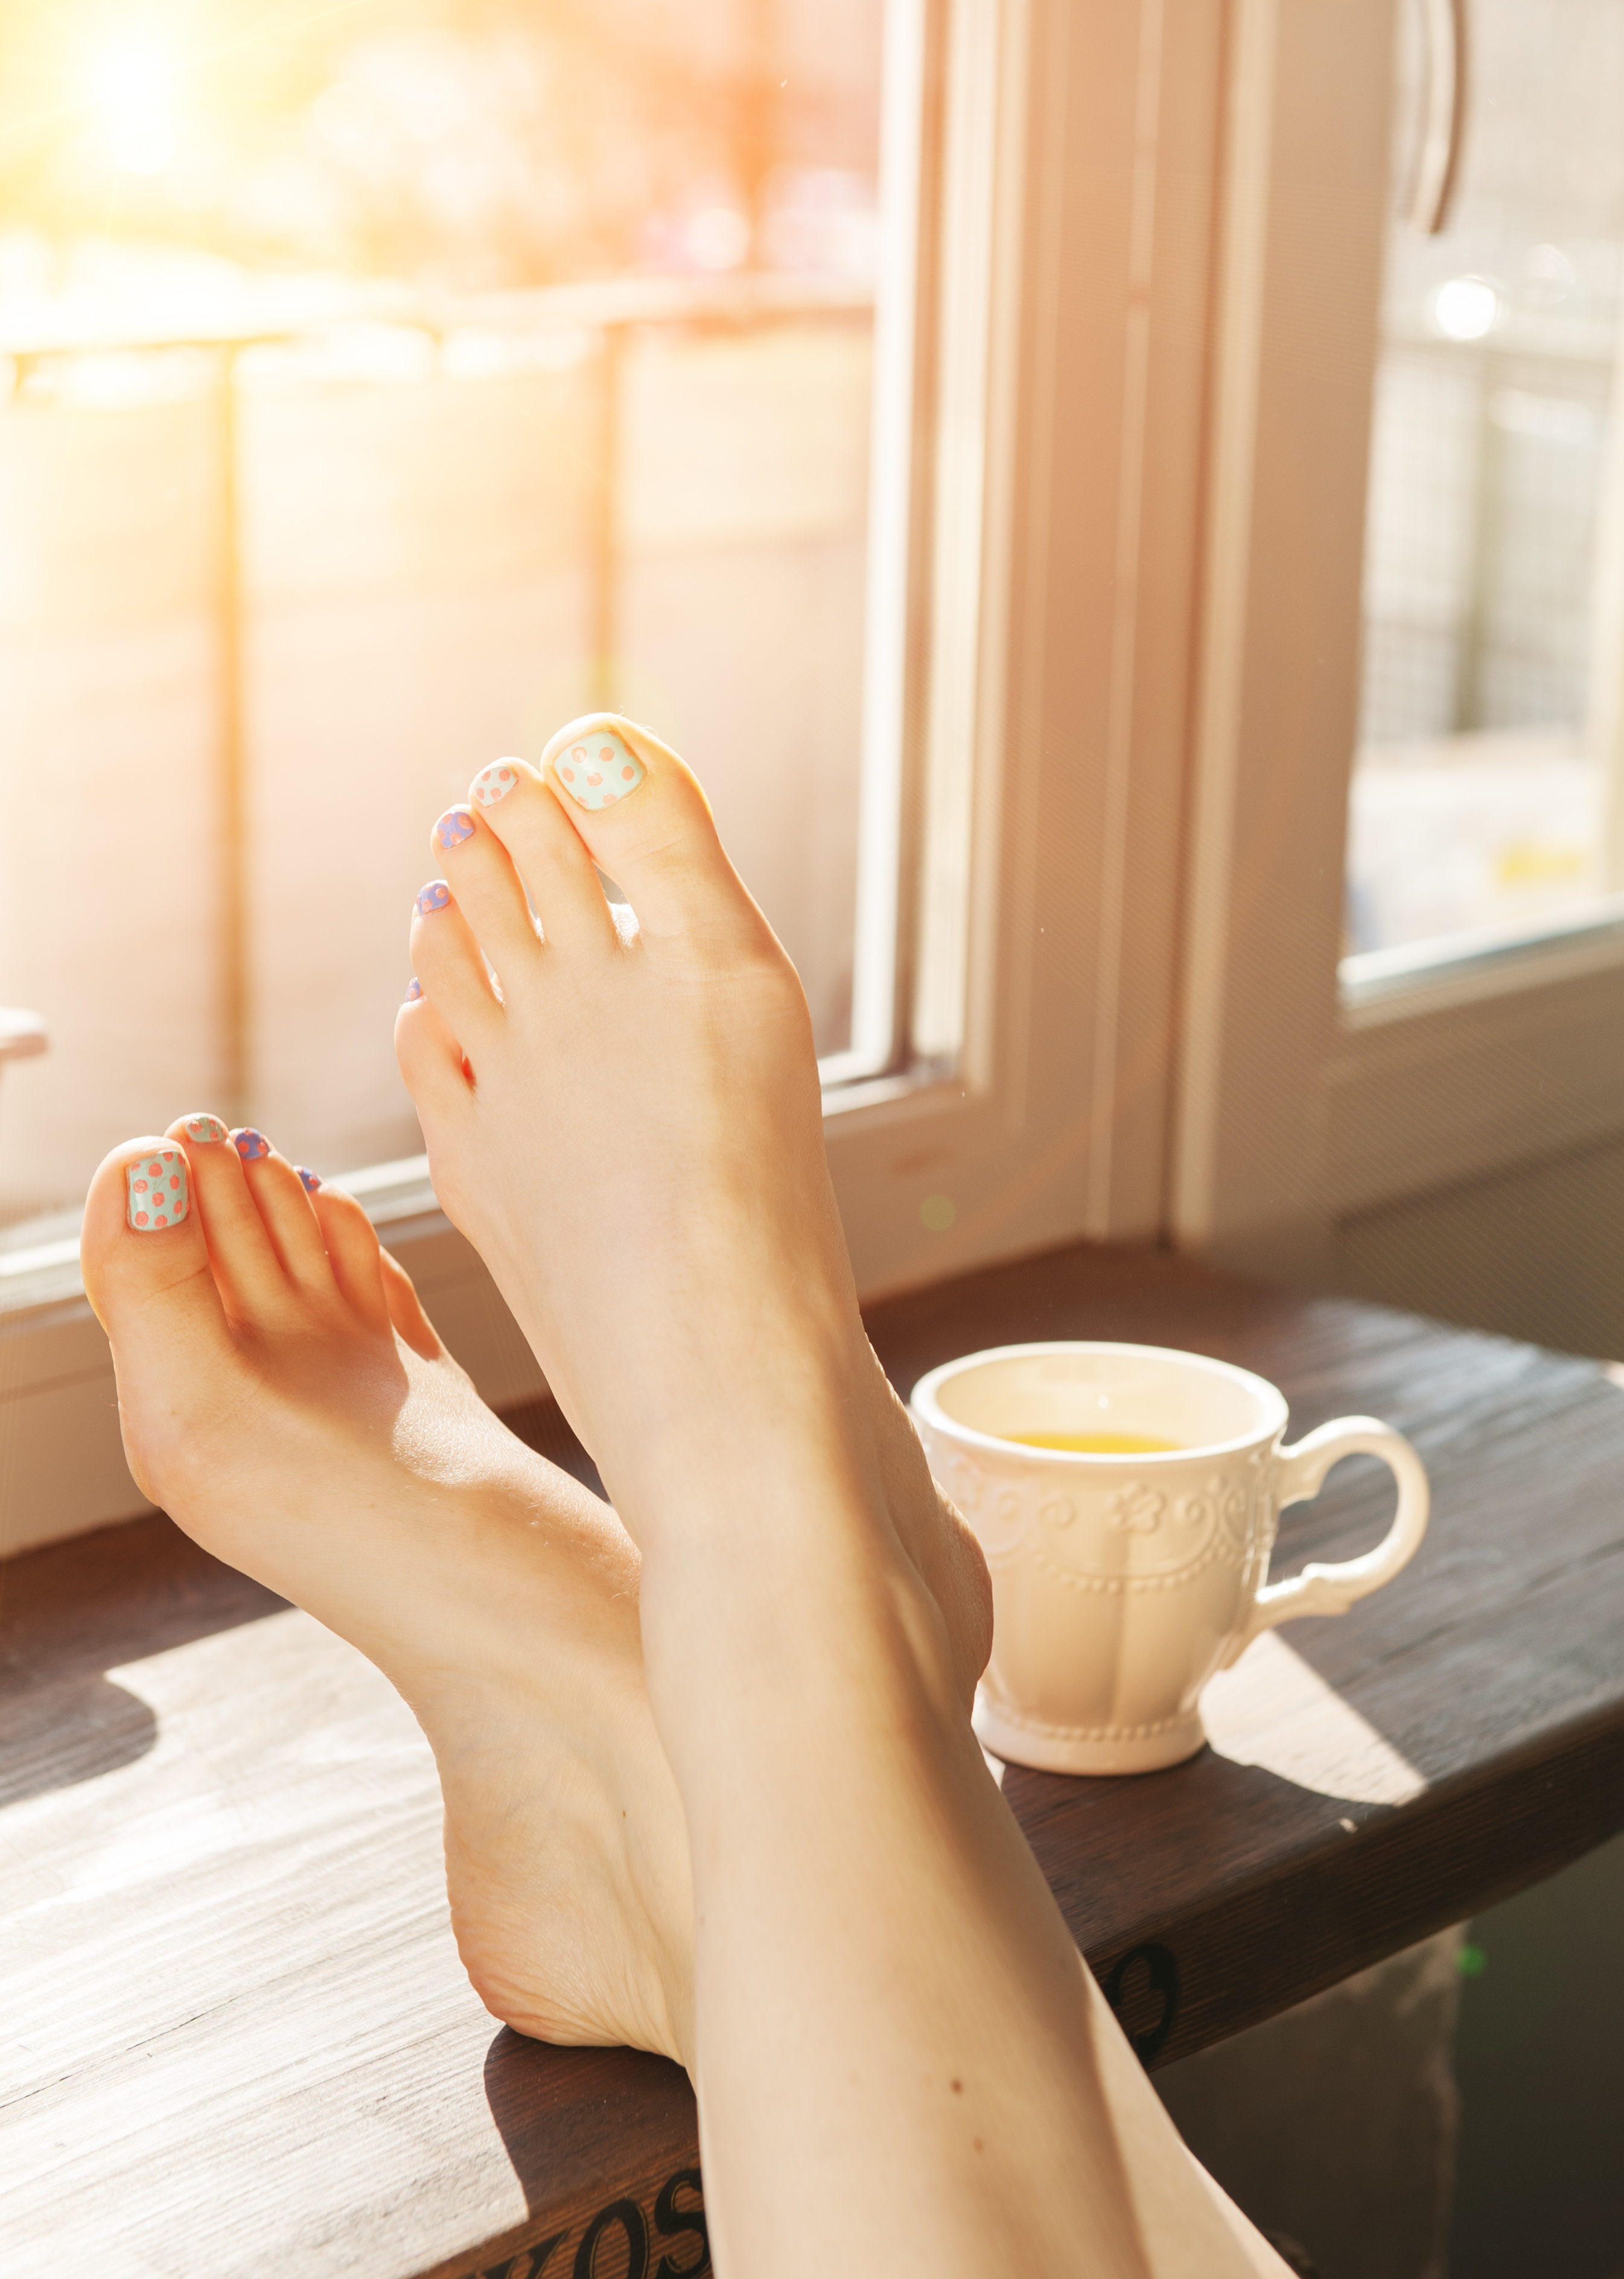 Woman feet on the window sill in sunlight. Relax concept